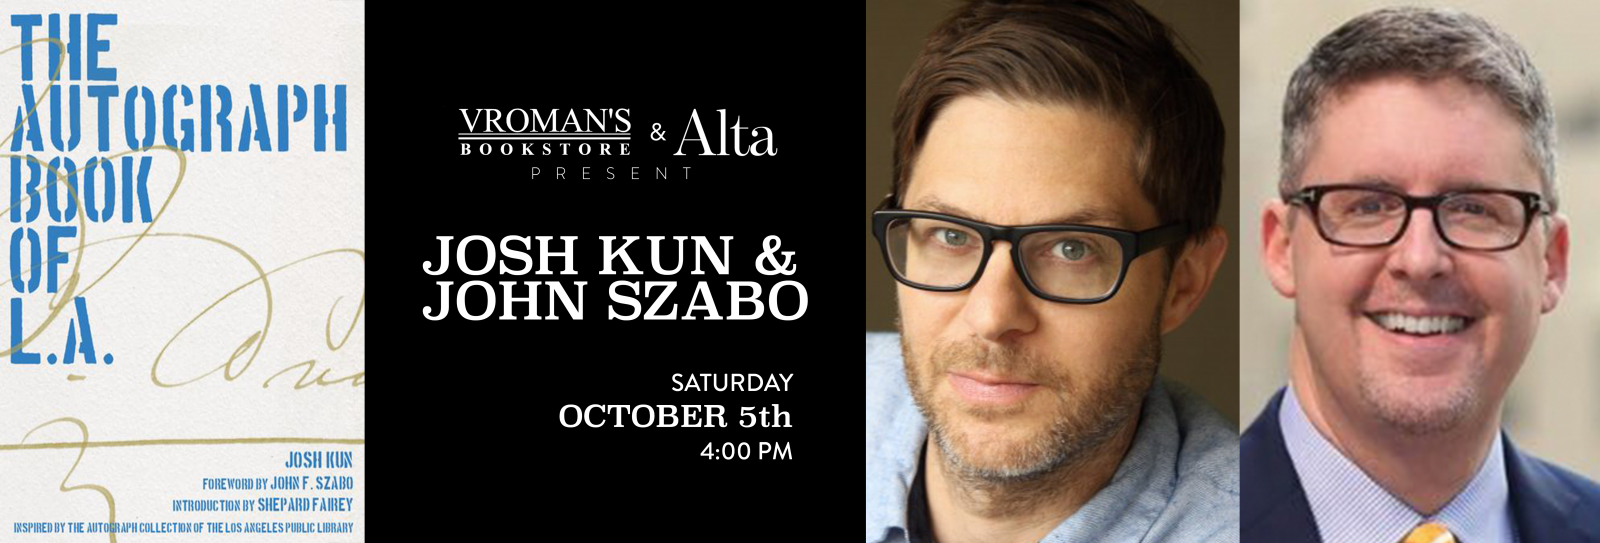 Josh Kun and John Szabo book signing Saturday October 5 at 4pm